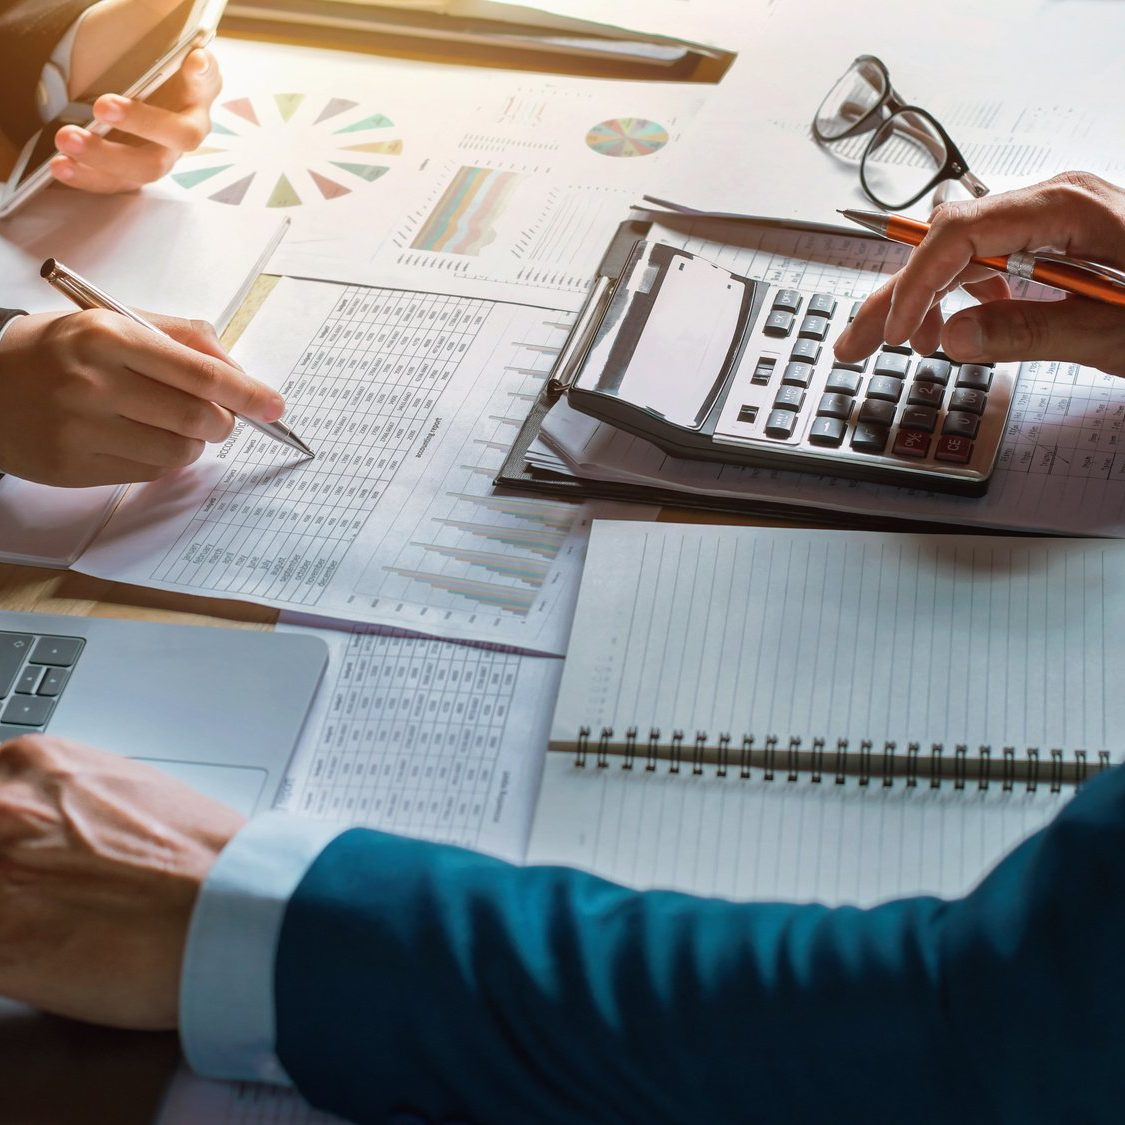 business-accounting-and-finance-concept